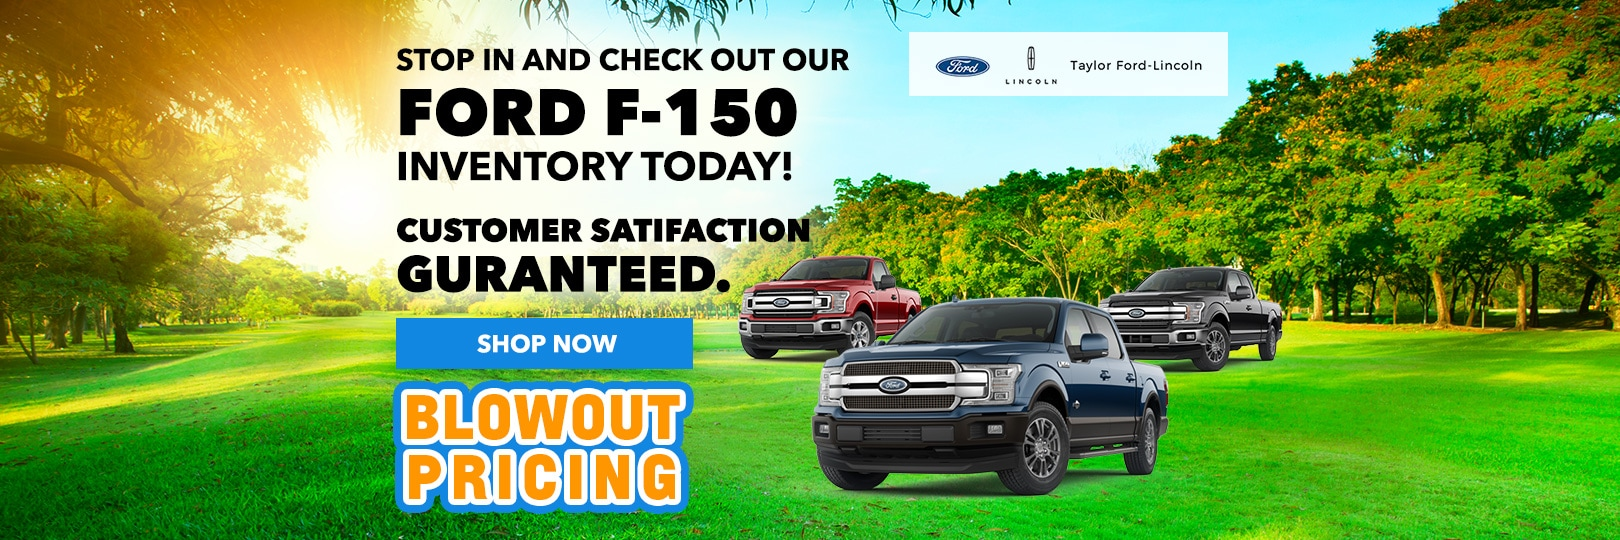 Shop Ford F-150 Inventory